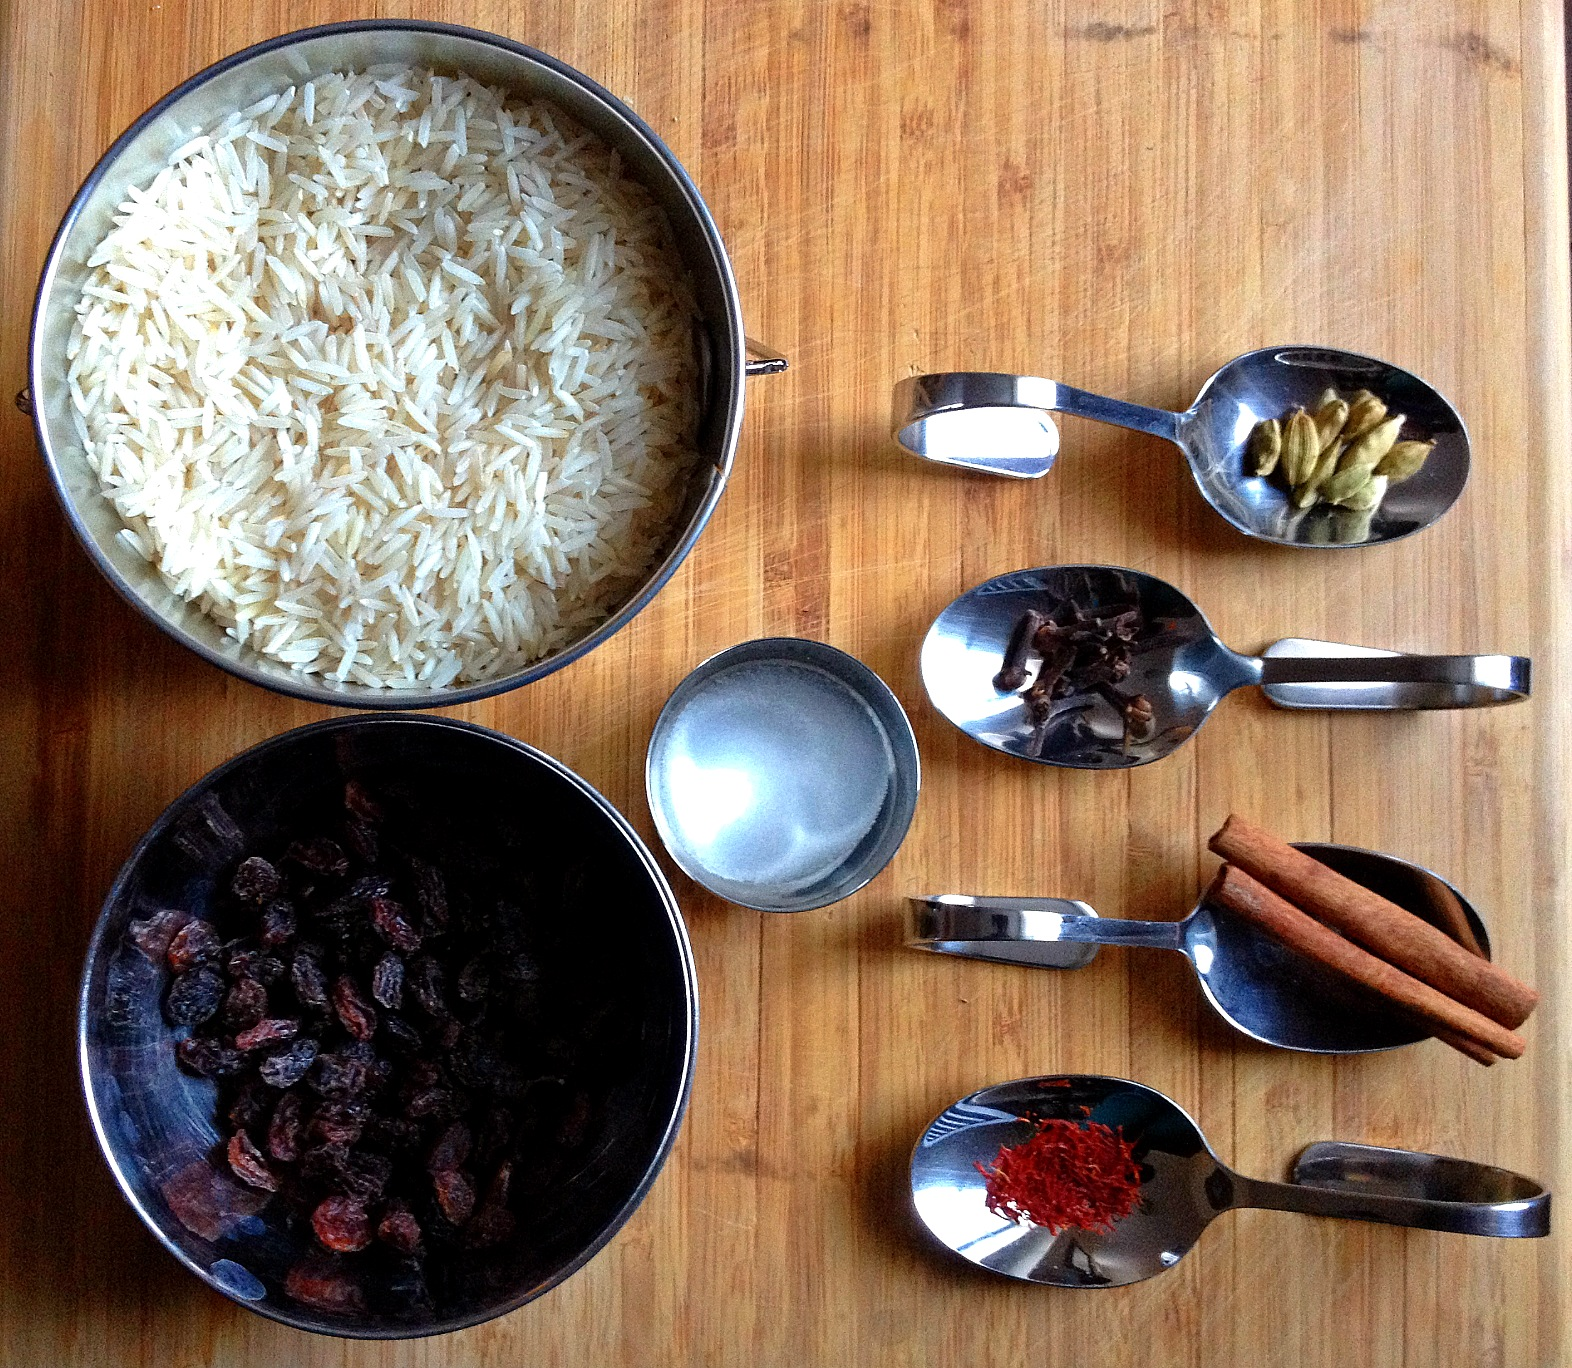 Ingredients for Basmati Rice with Saffron and Whole Spices